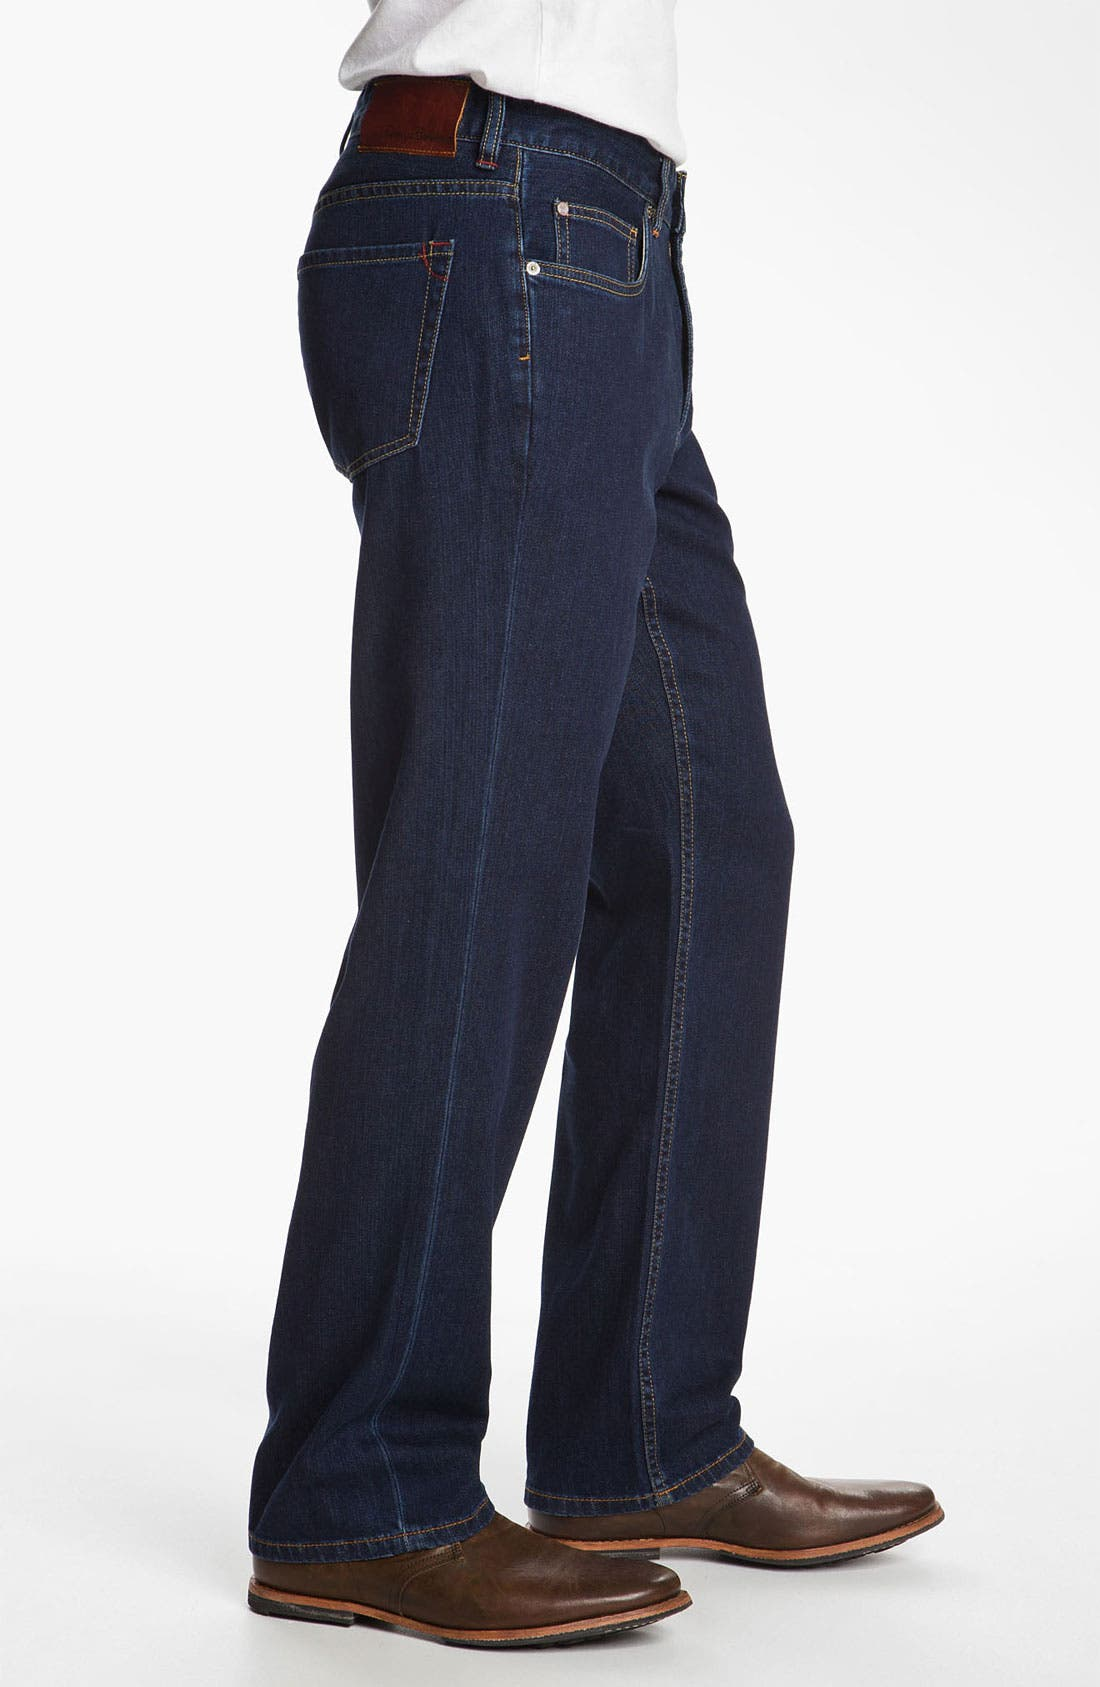 Alternate Image 3  - Tommy Bahama Denim 'Original Cooper' Jeans (New Rinse)